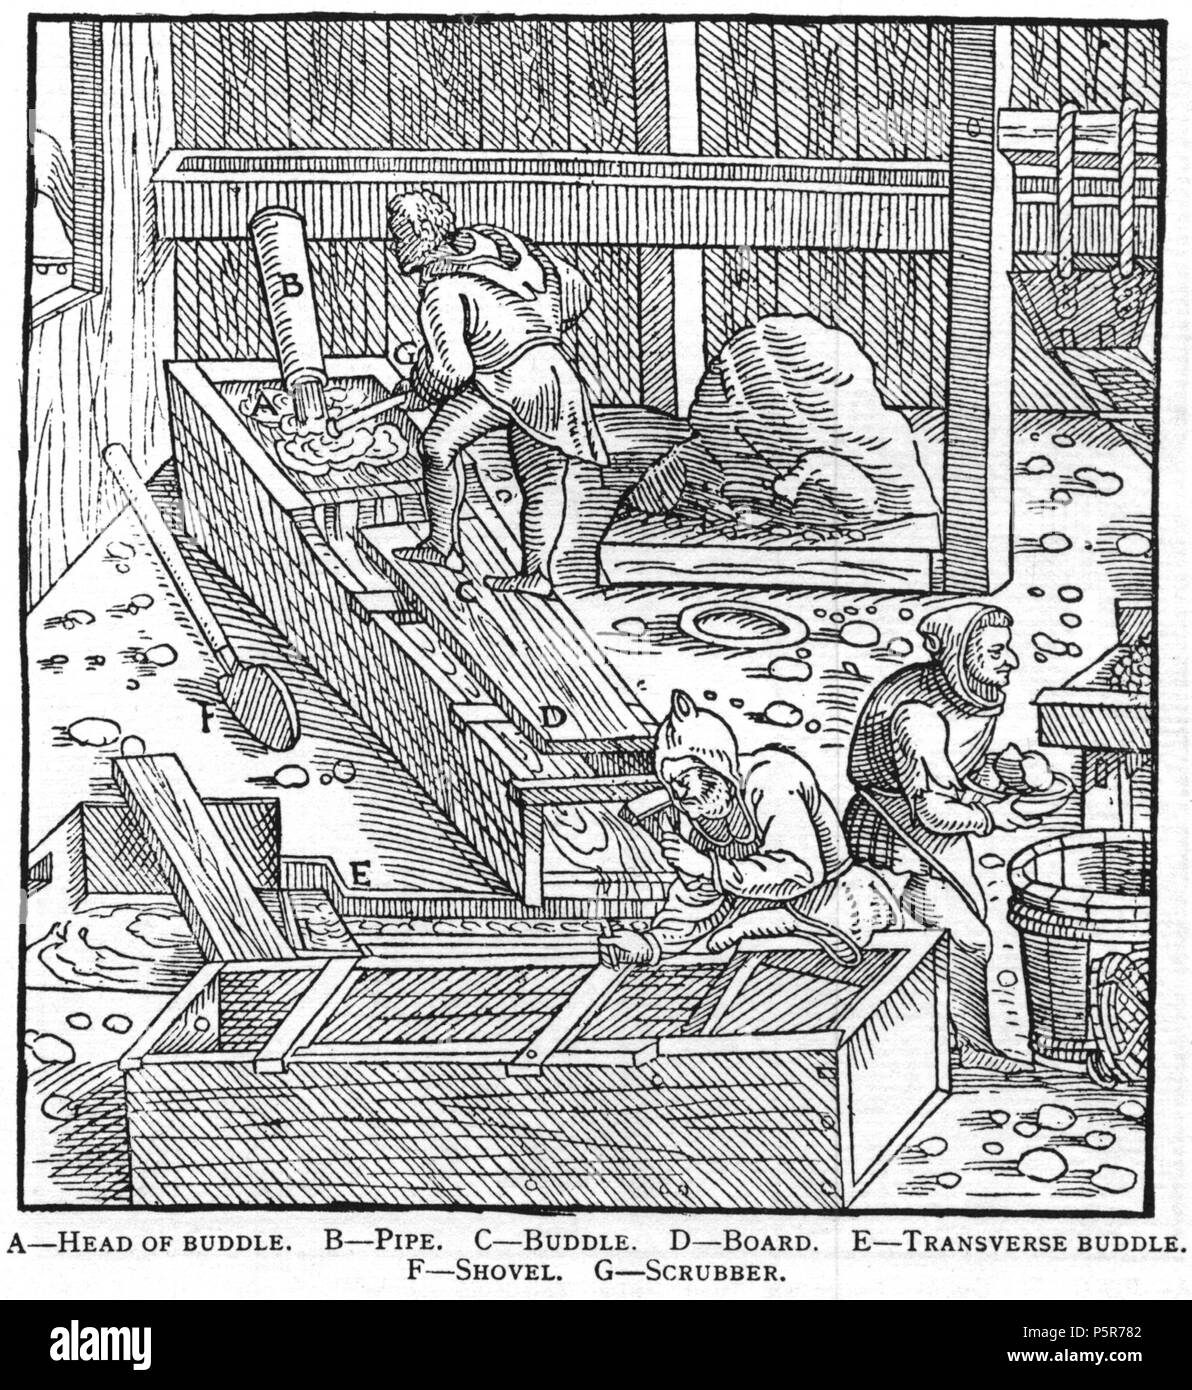 N/A. Woodcut illustration from De re metallica by Georgius Agricola. This is a 300dpi scan from the 1950 Dover edition of the 1913 Hoover translation of the 1556 reference. The Dover edition has slightly smaller size prints than the Hoover (which is a rare book). The woodcuts were recreated for the 1913 printing. Filenames (except for the title page) indicate the chapter (2, 3, 5, etc.) followed by the sequential number of the illustration. 2 May 2005, 07:13:02. TCO (talk) 223 Book8-23 - Stock Image